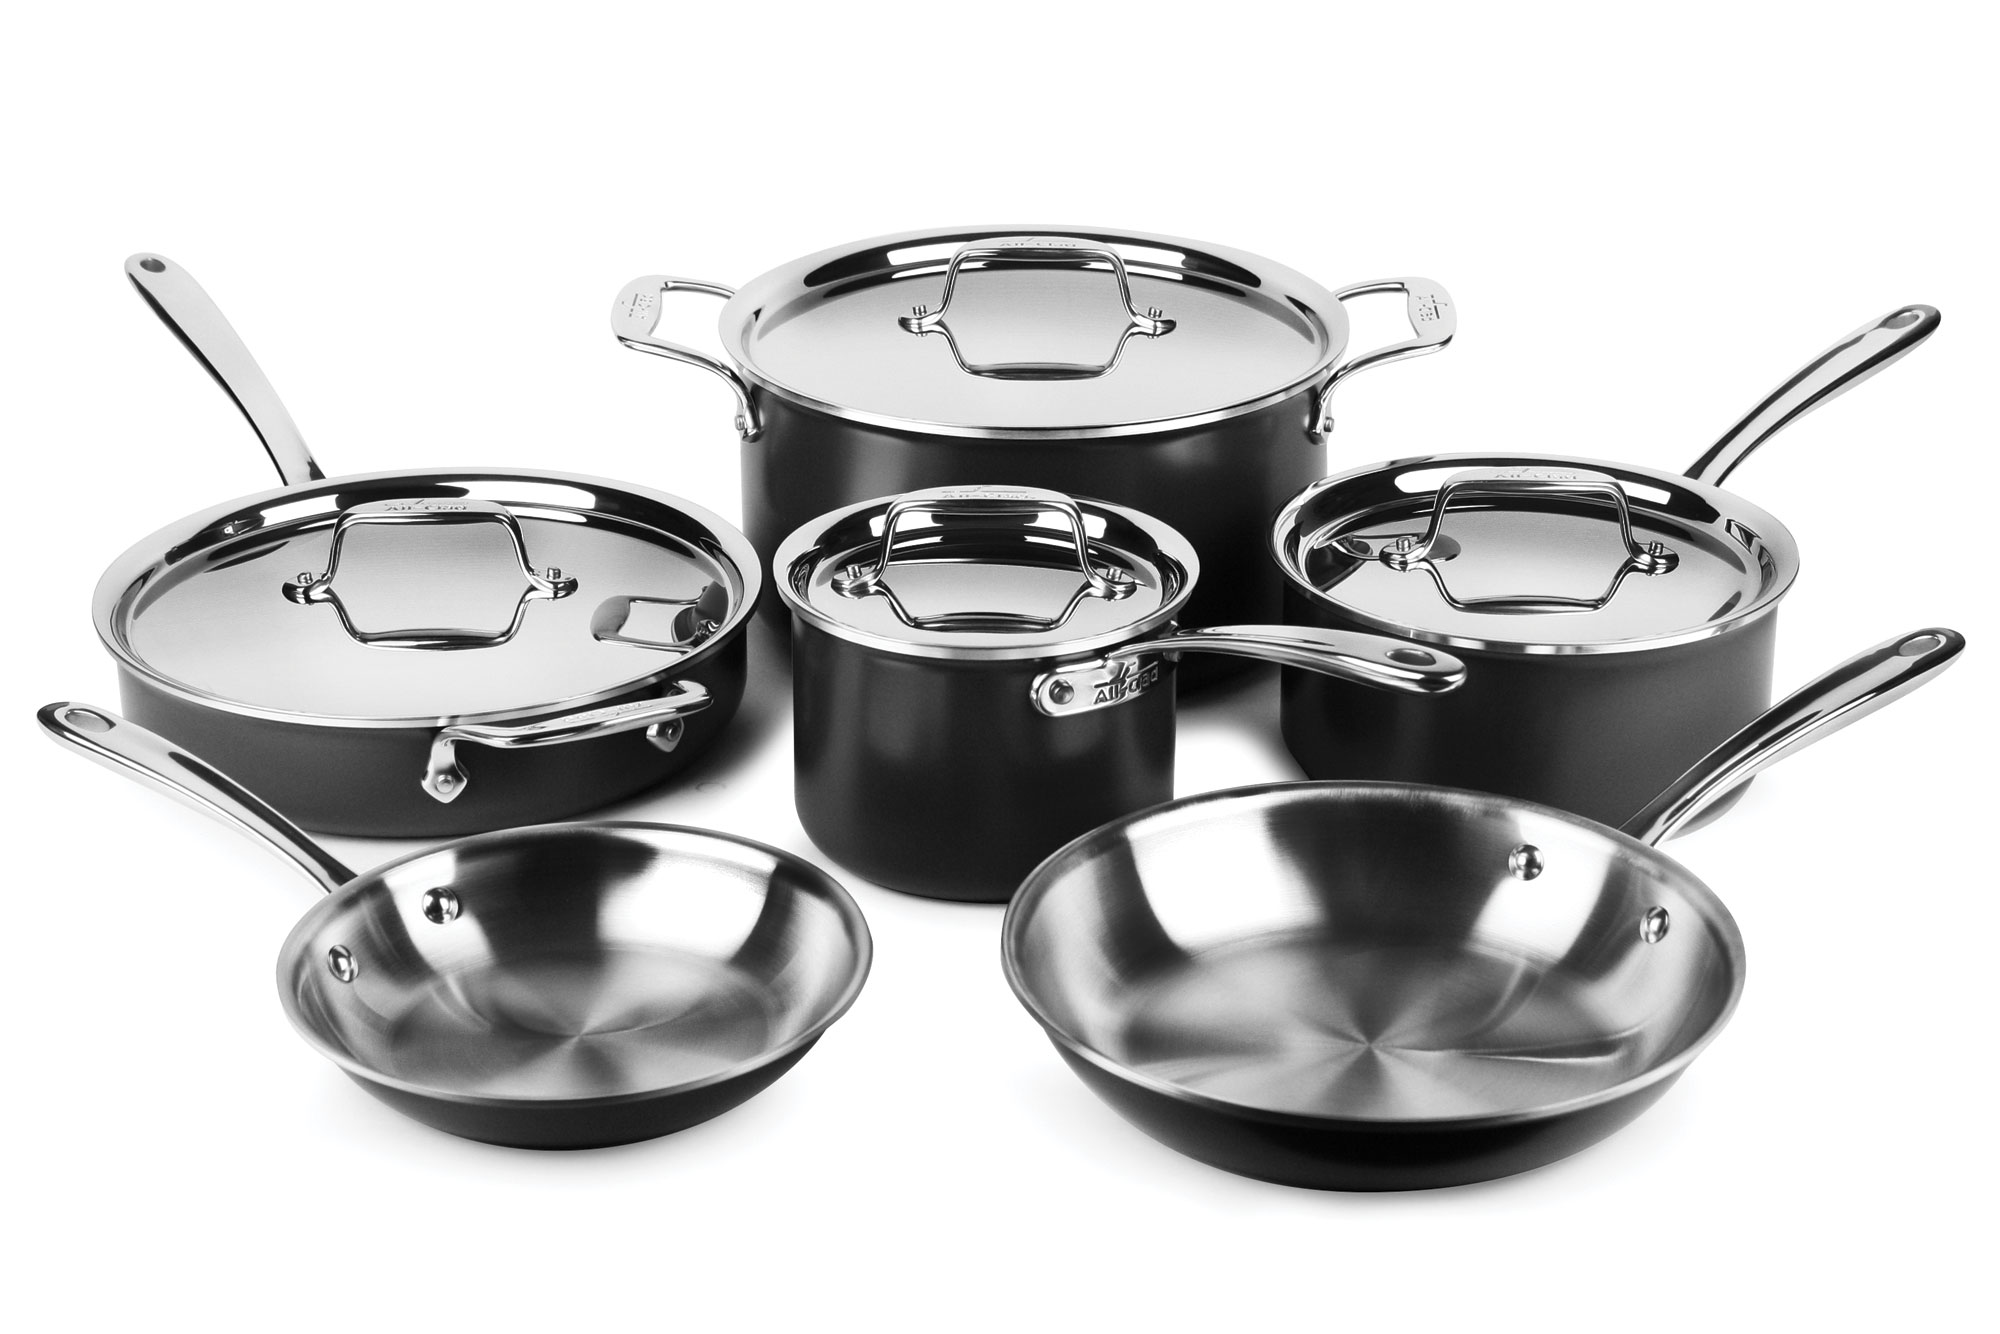 All Clad Ltd Cookware Set 10 Piece Cutlery And More